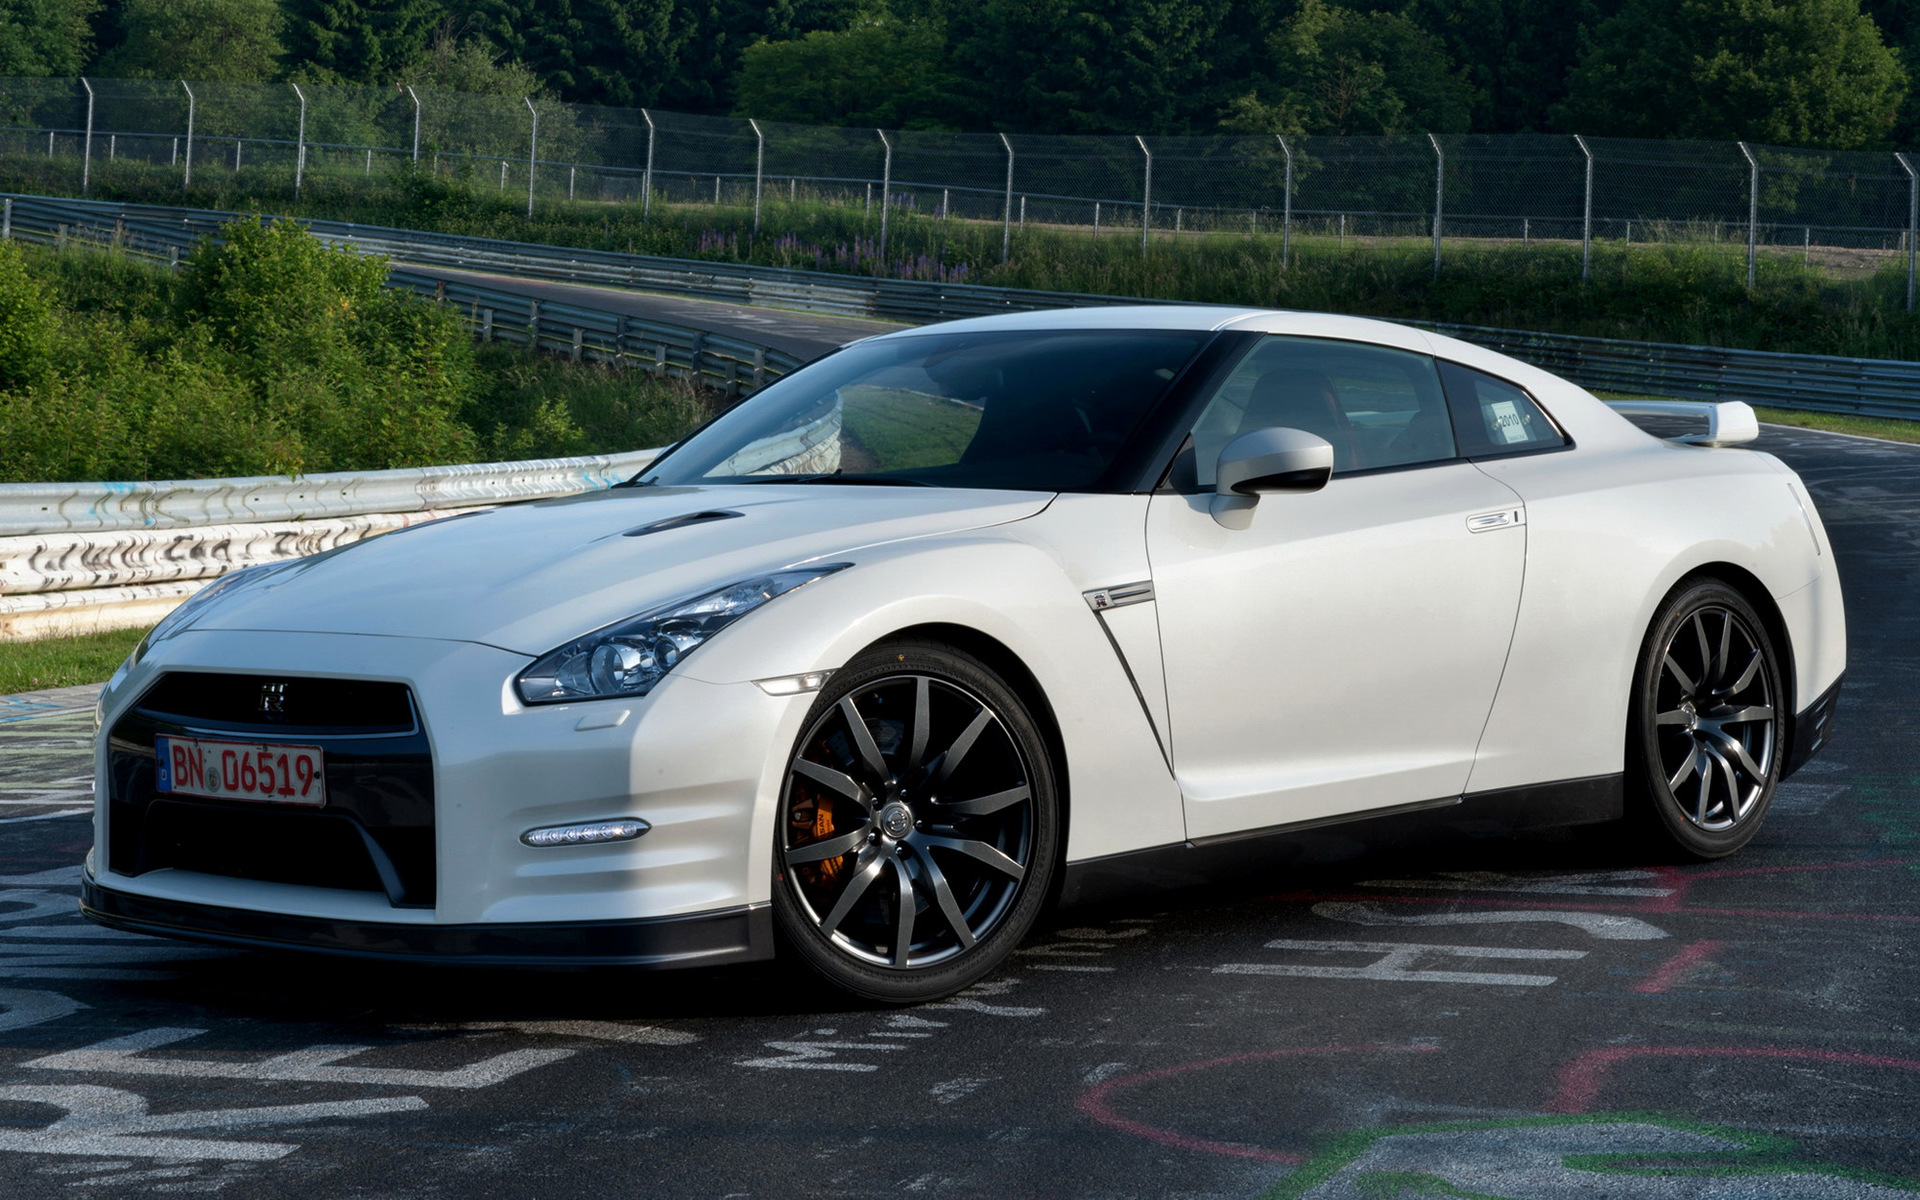 Nissan Gt R Black Edition 2010 Wallpapers And Hd Images